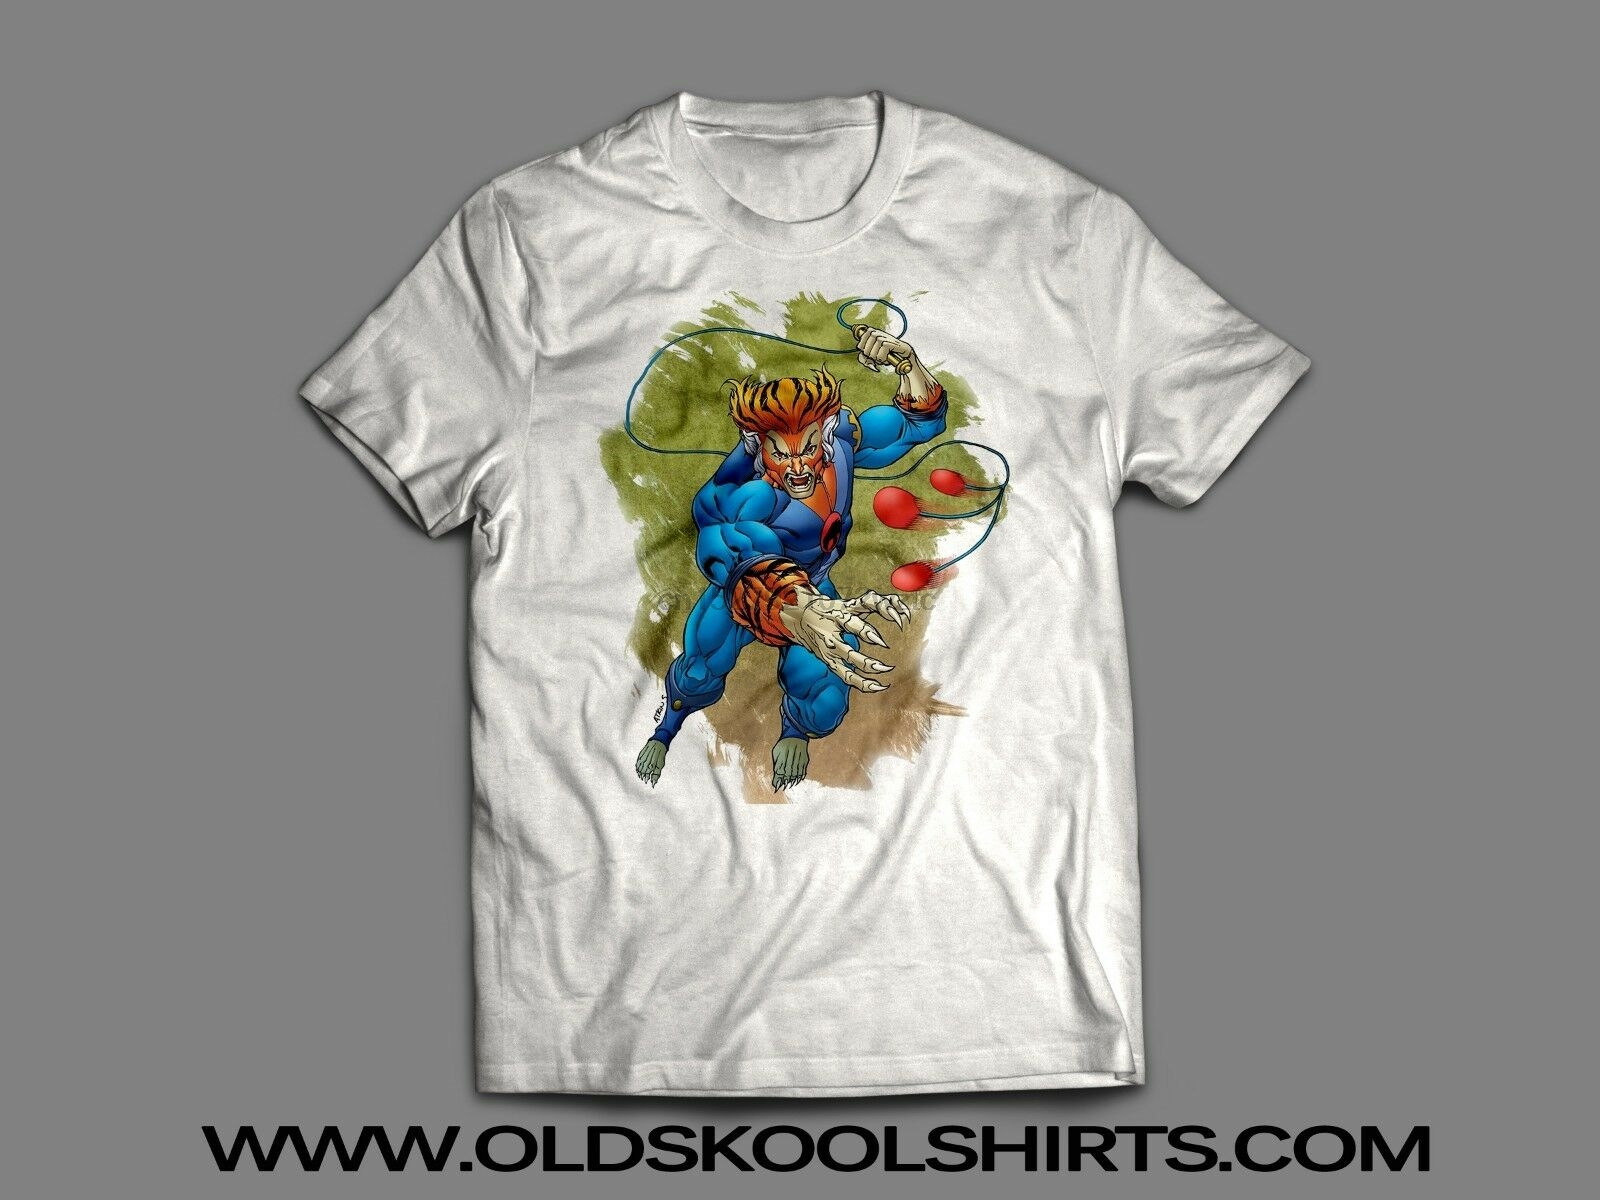 THUNDERCATS RETRO CARTOON TYGRA 1980'S Custom Mens T-Shirt MANY OPTIONS